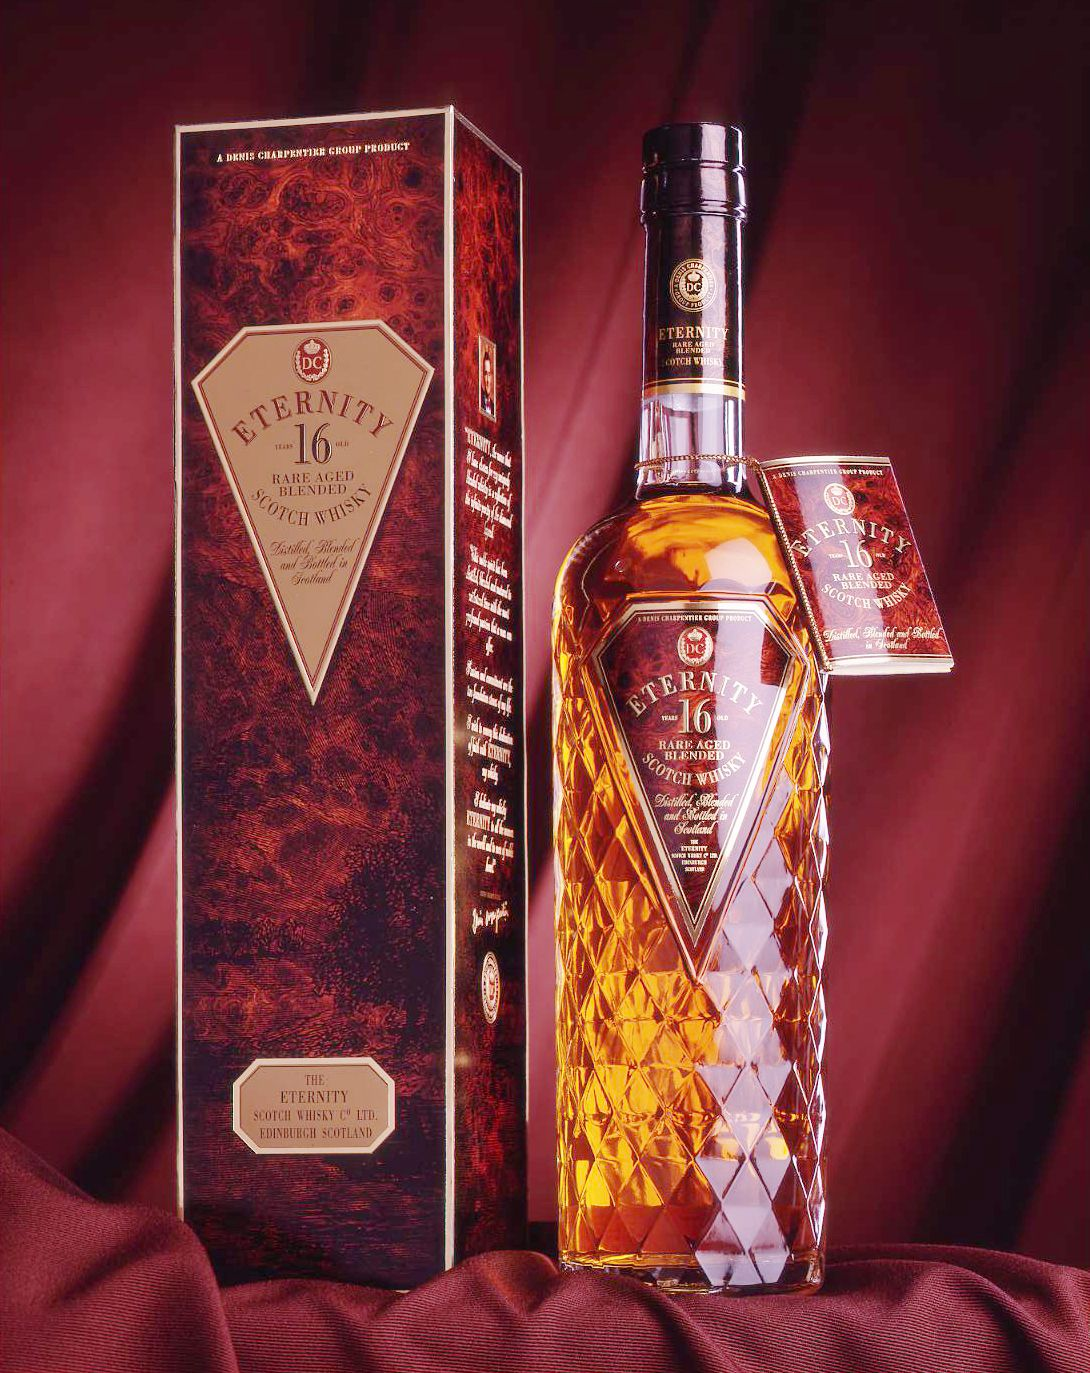 Eternity 16 Years Old Whisky Memento Linea Liquor Bottles Whisky Vodka